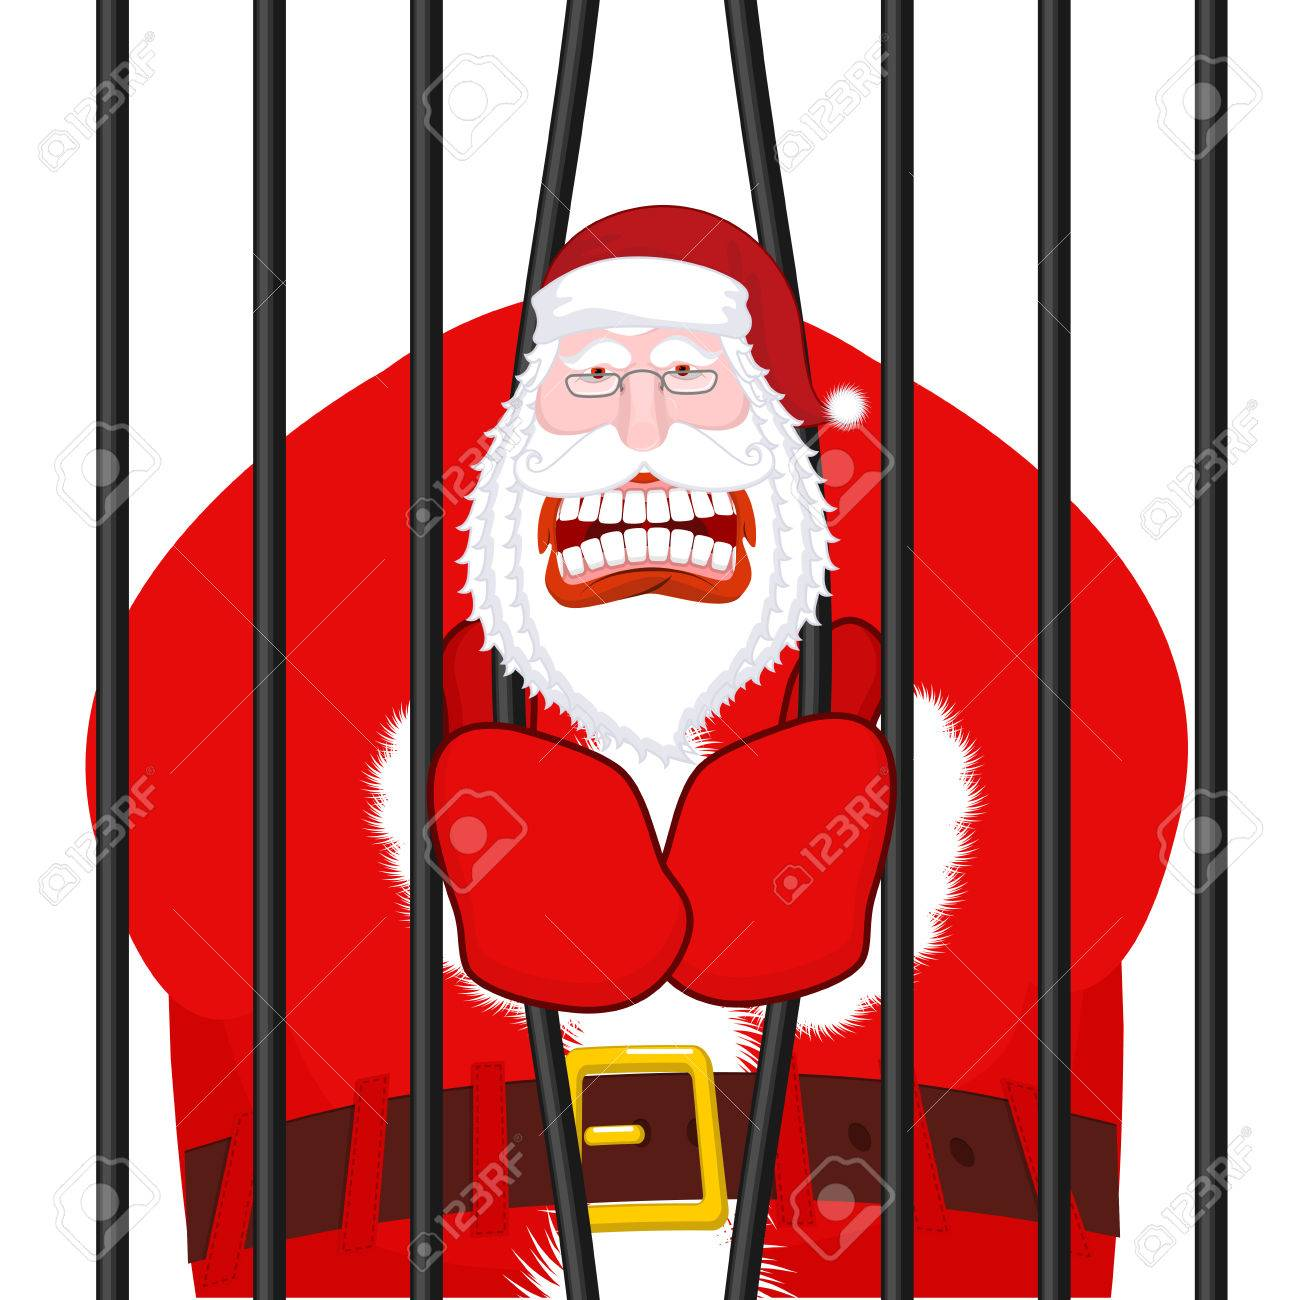 Prisoner Christmas.Santa Claus Gangster Christmas In Prison Window In Prison With